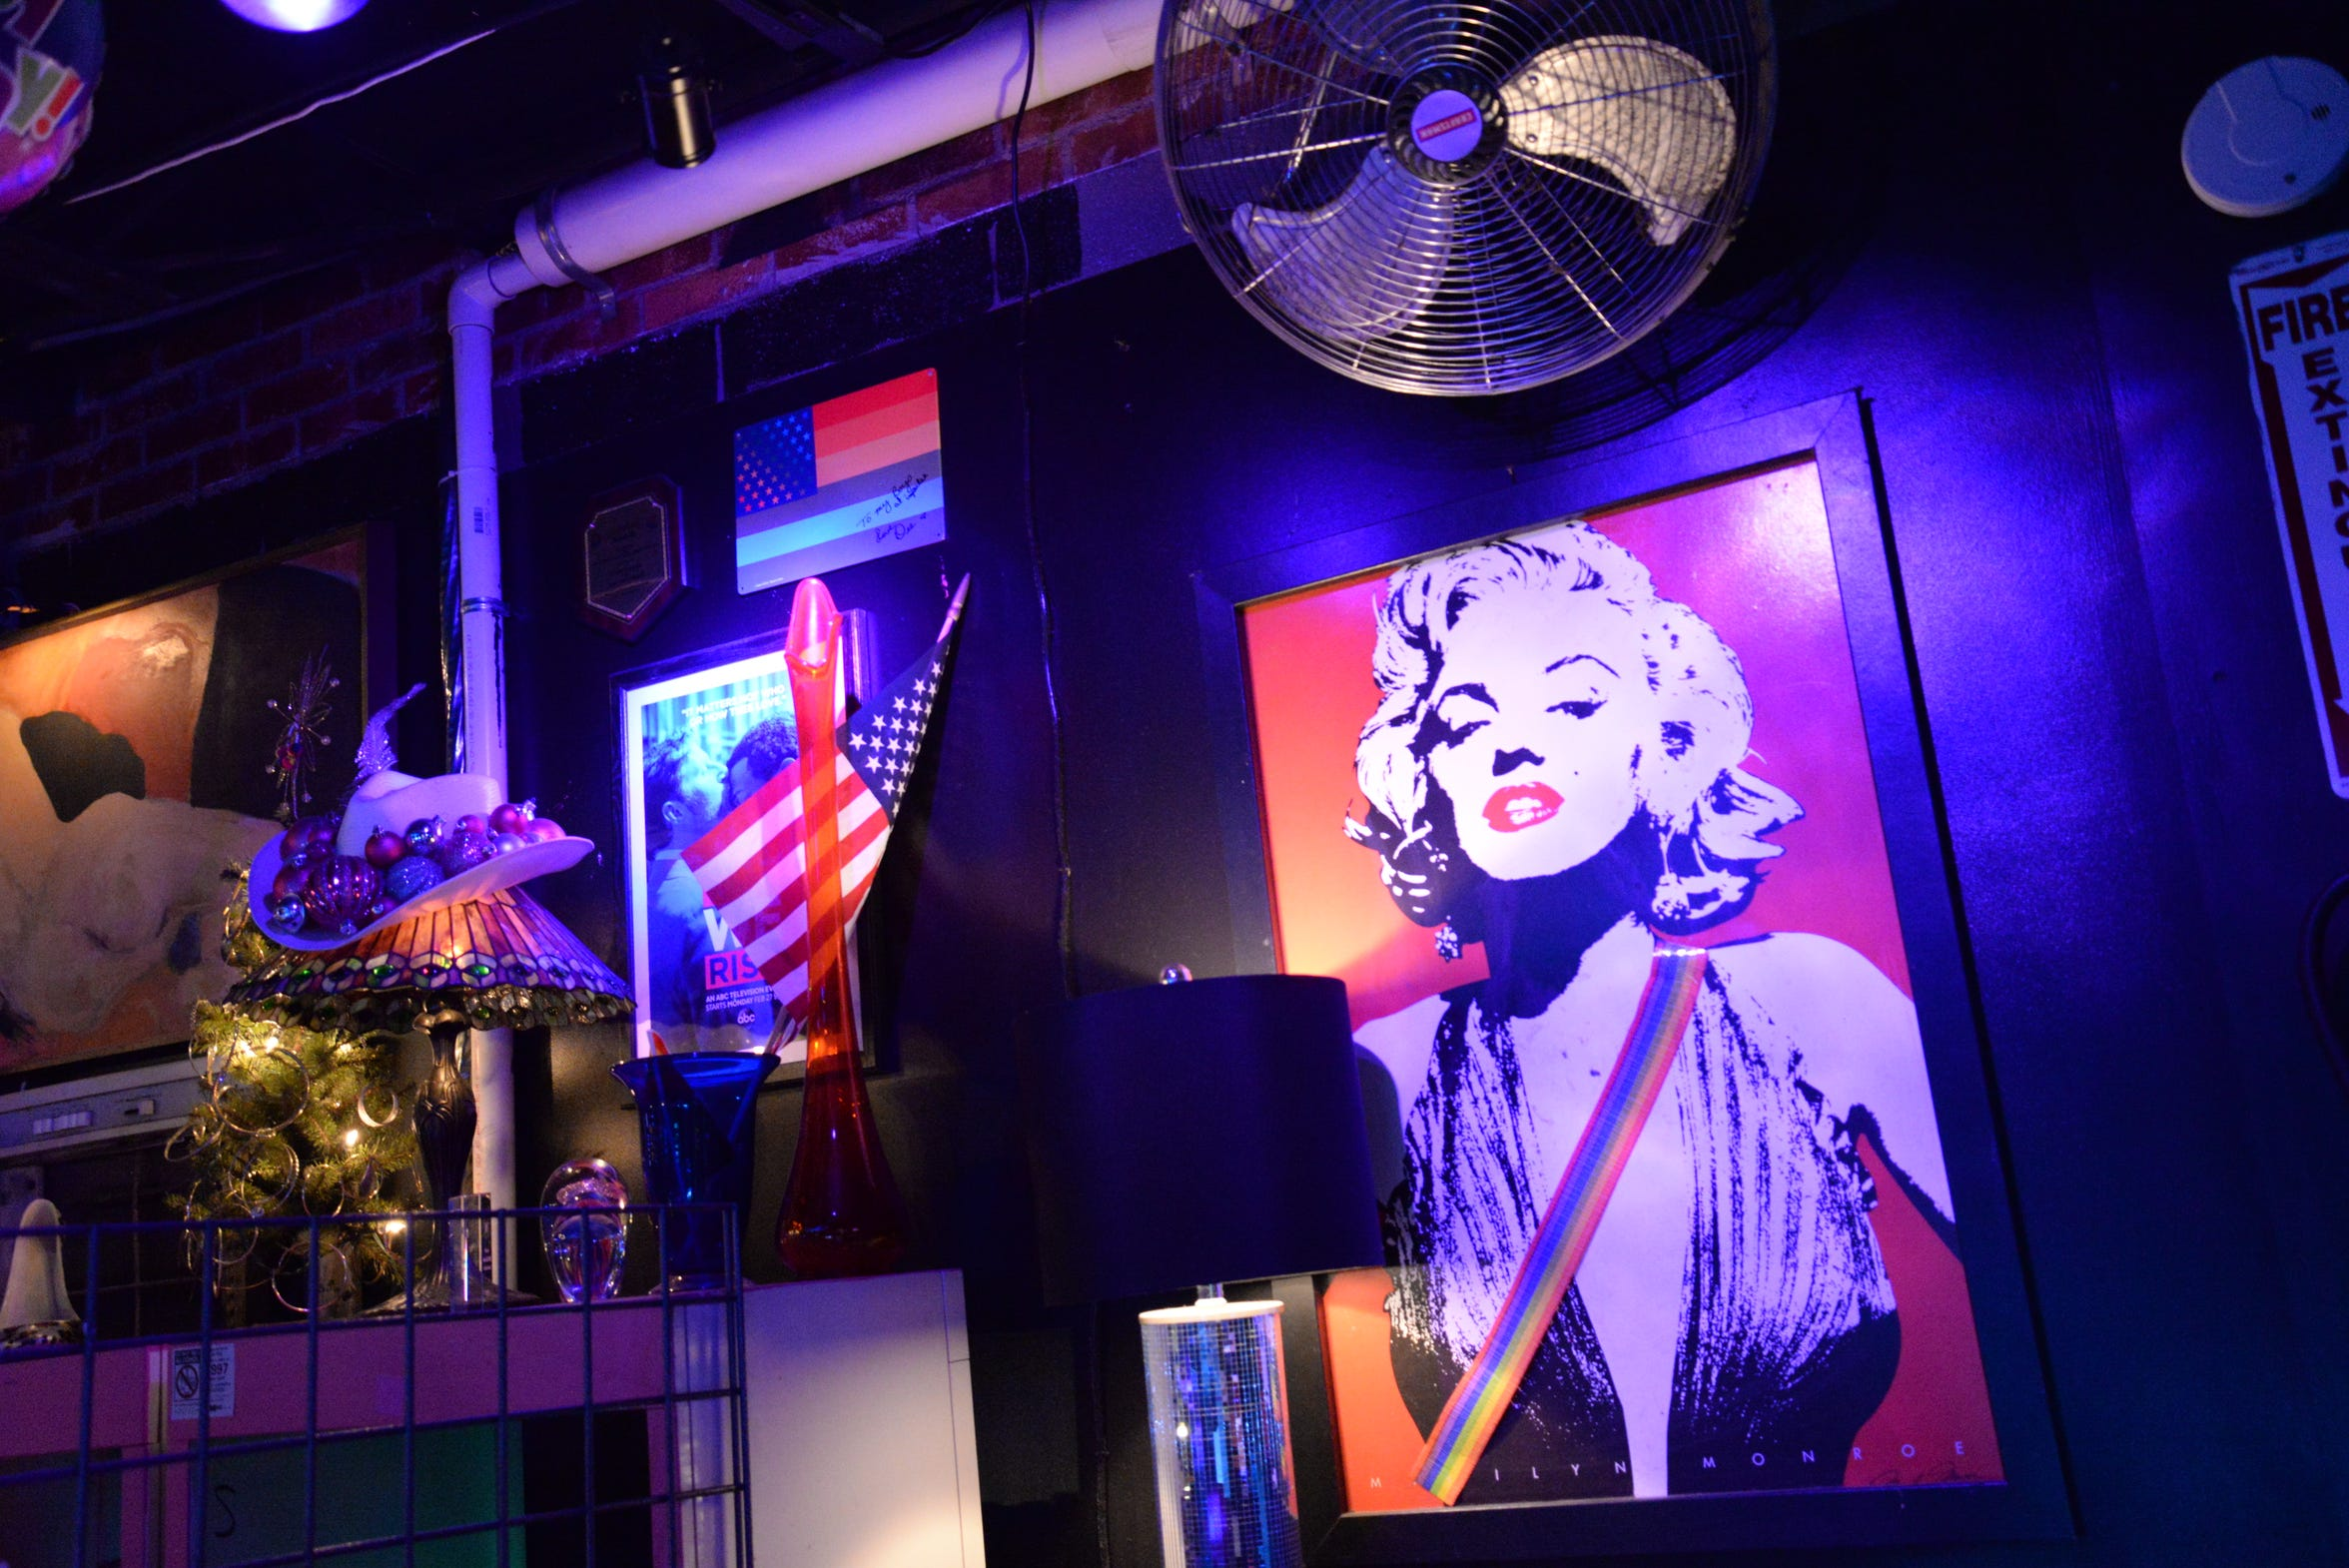 Inside Impulse Social Gay Club in Charlottesville. The club recently received permits to begin construction at a Waynesboro location on East Main Street.